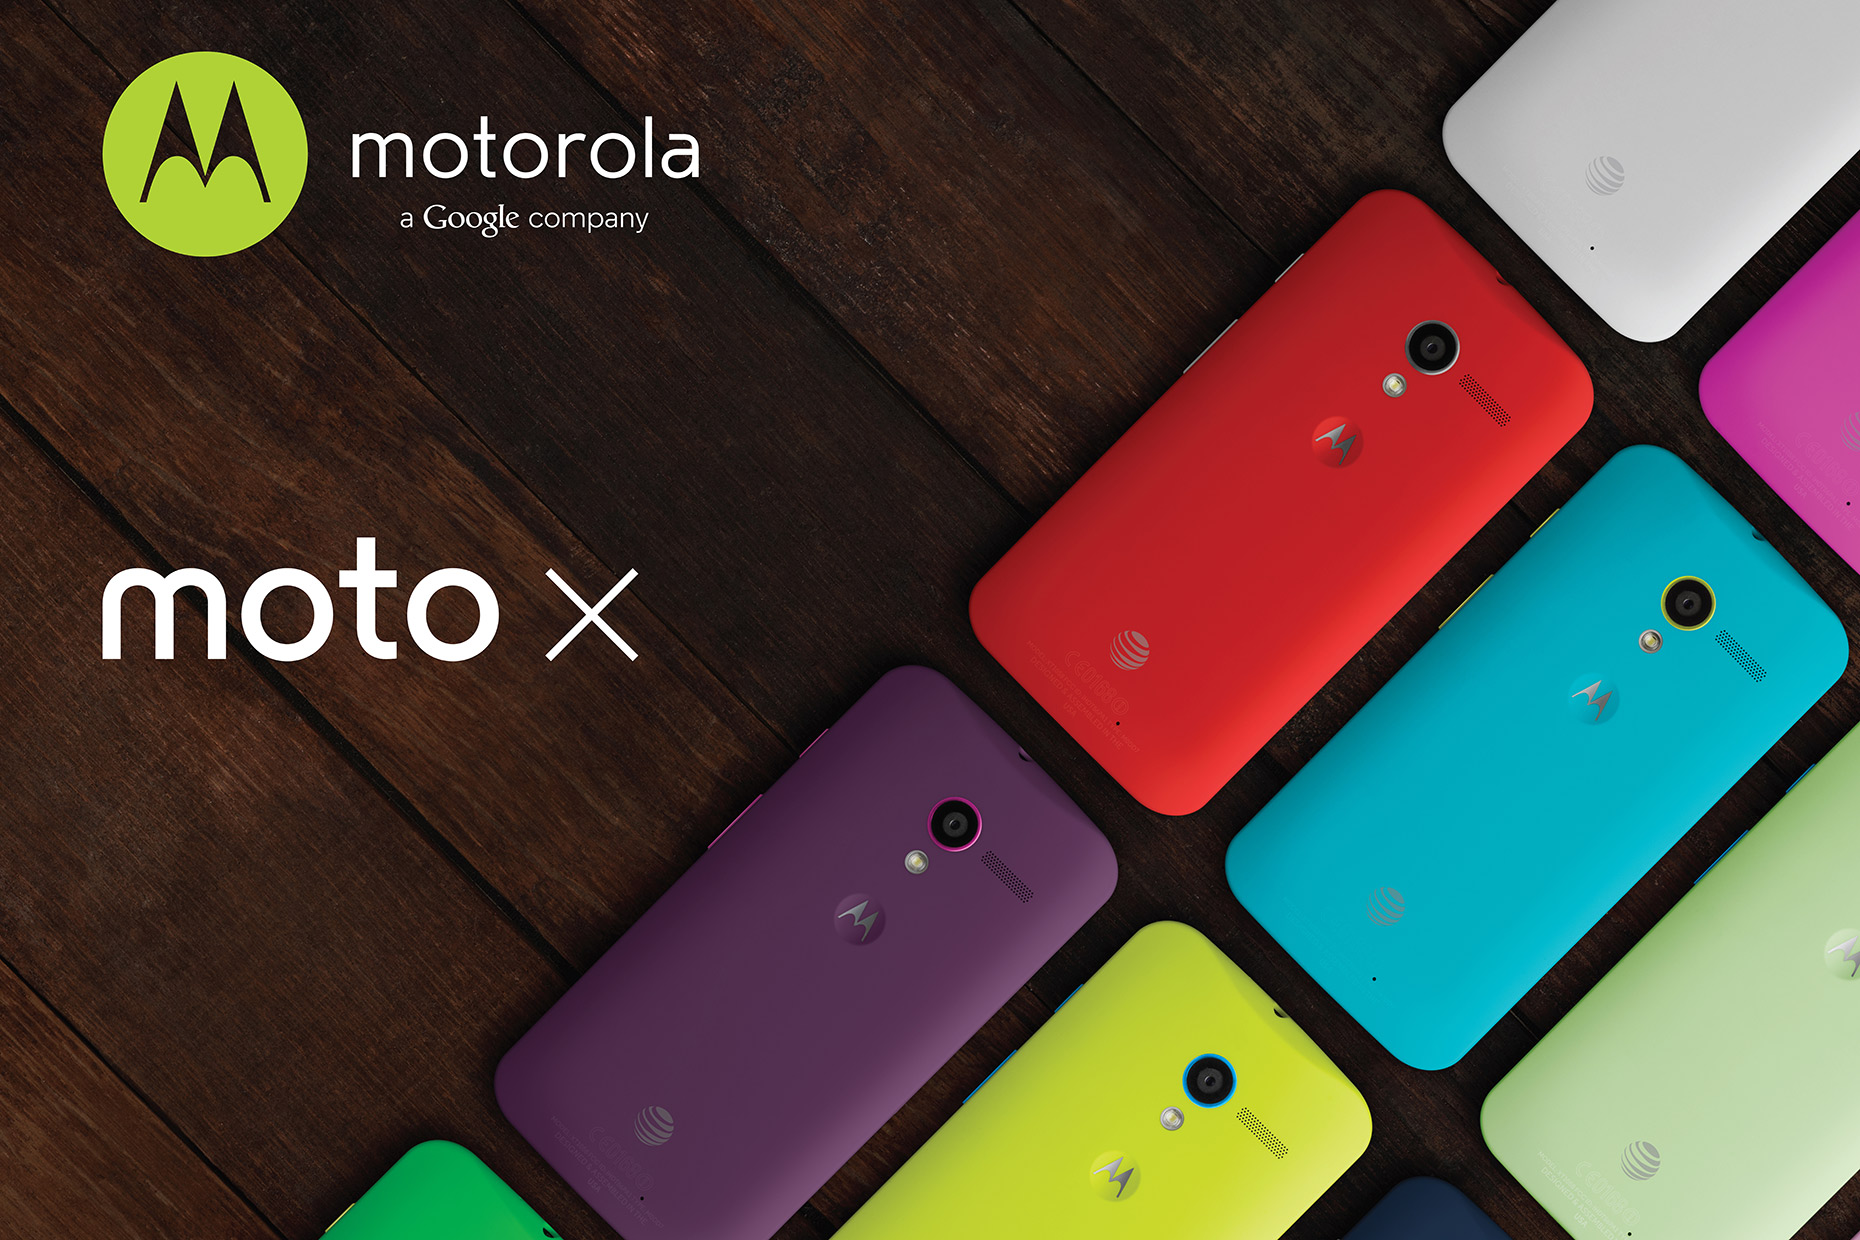 Motorola_BTL_Key_Visuals_Layout_Guidelines_Grid_-